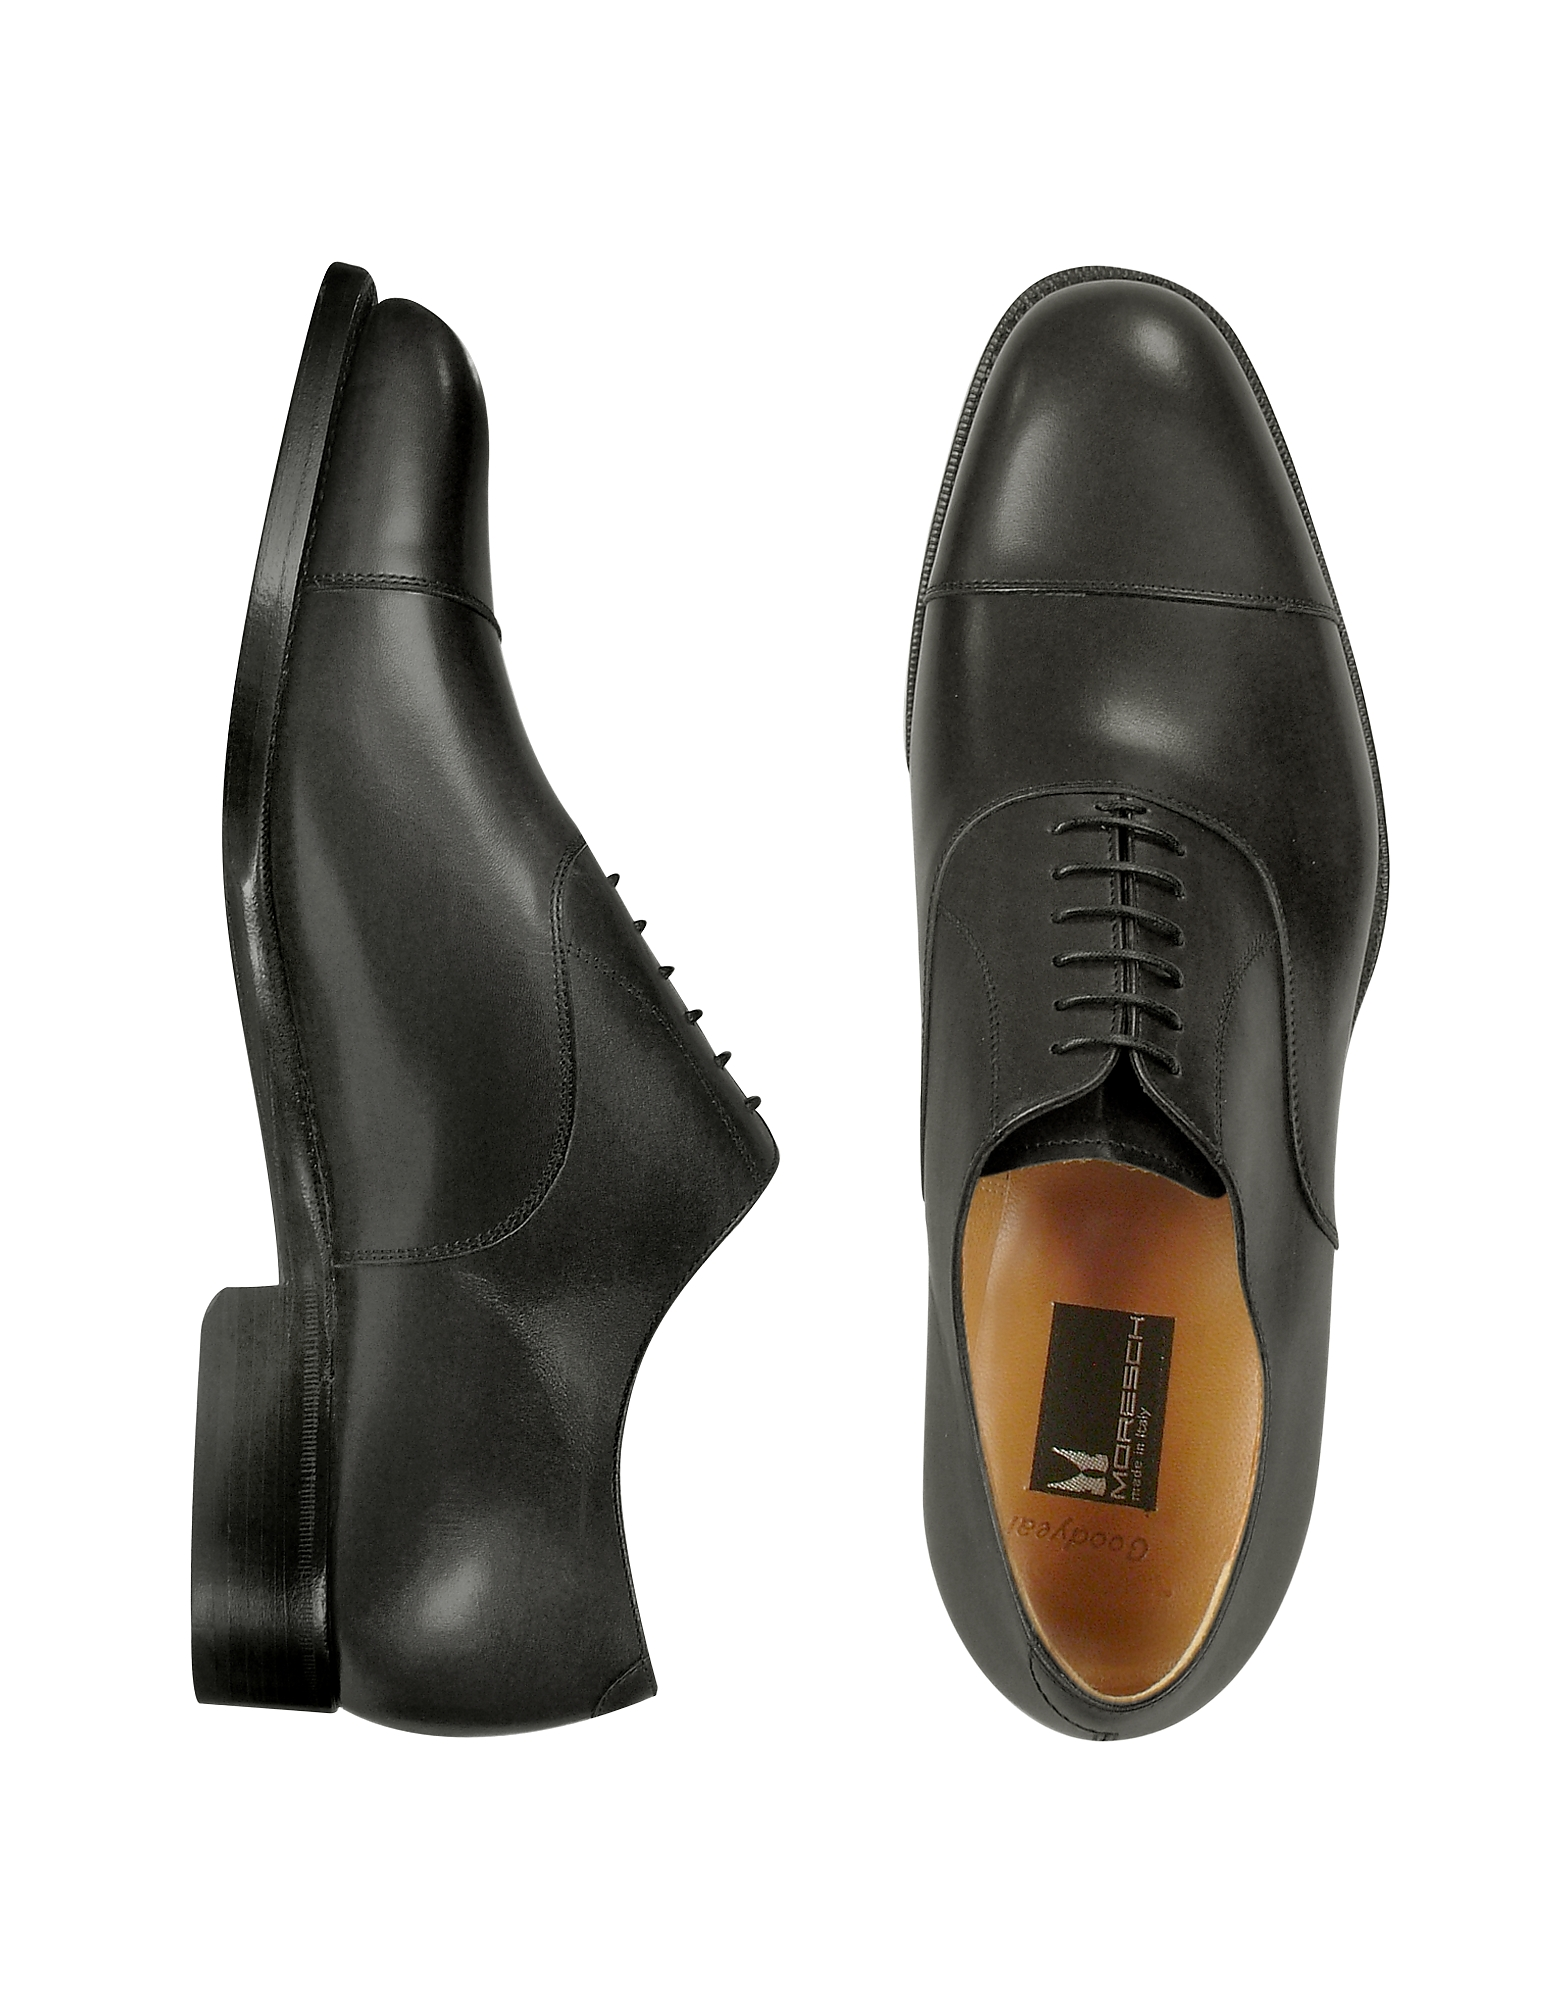 Moreschi Shoes, Londra - Black Calfskin Cap Toe Oxford Shoes